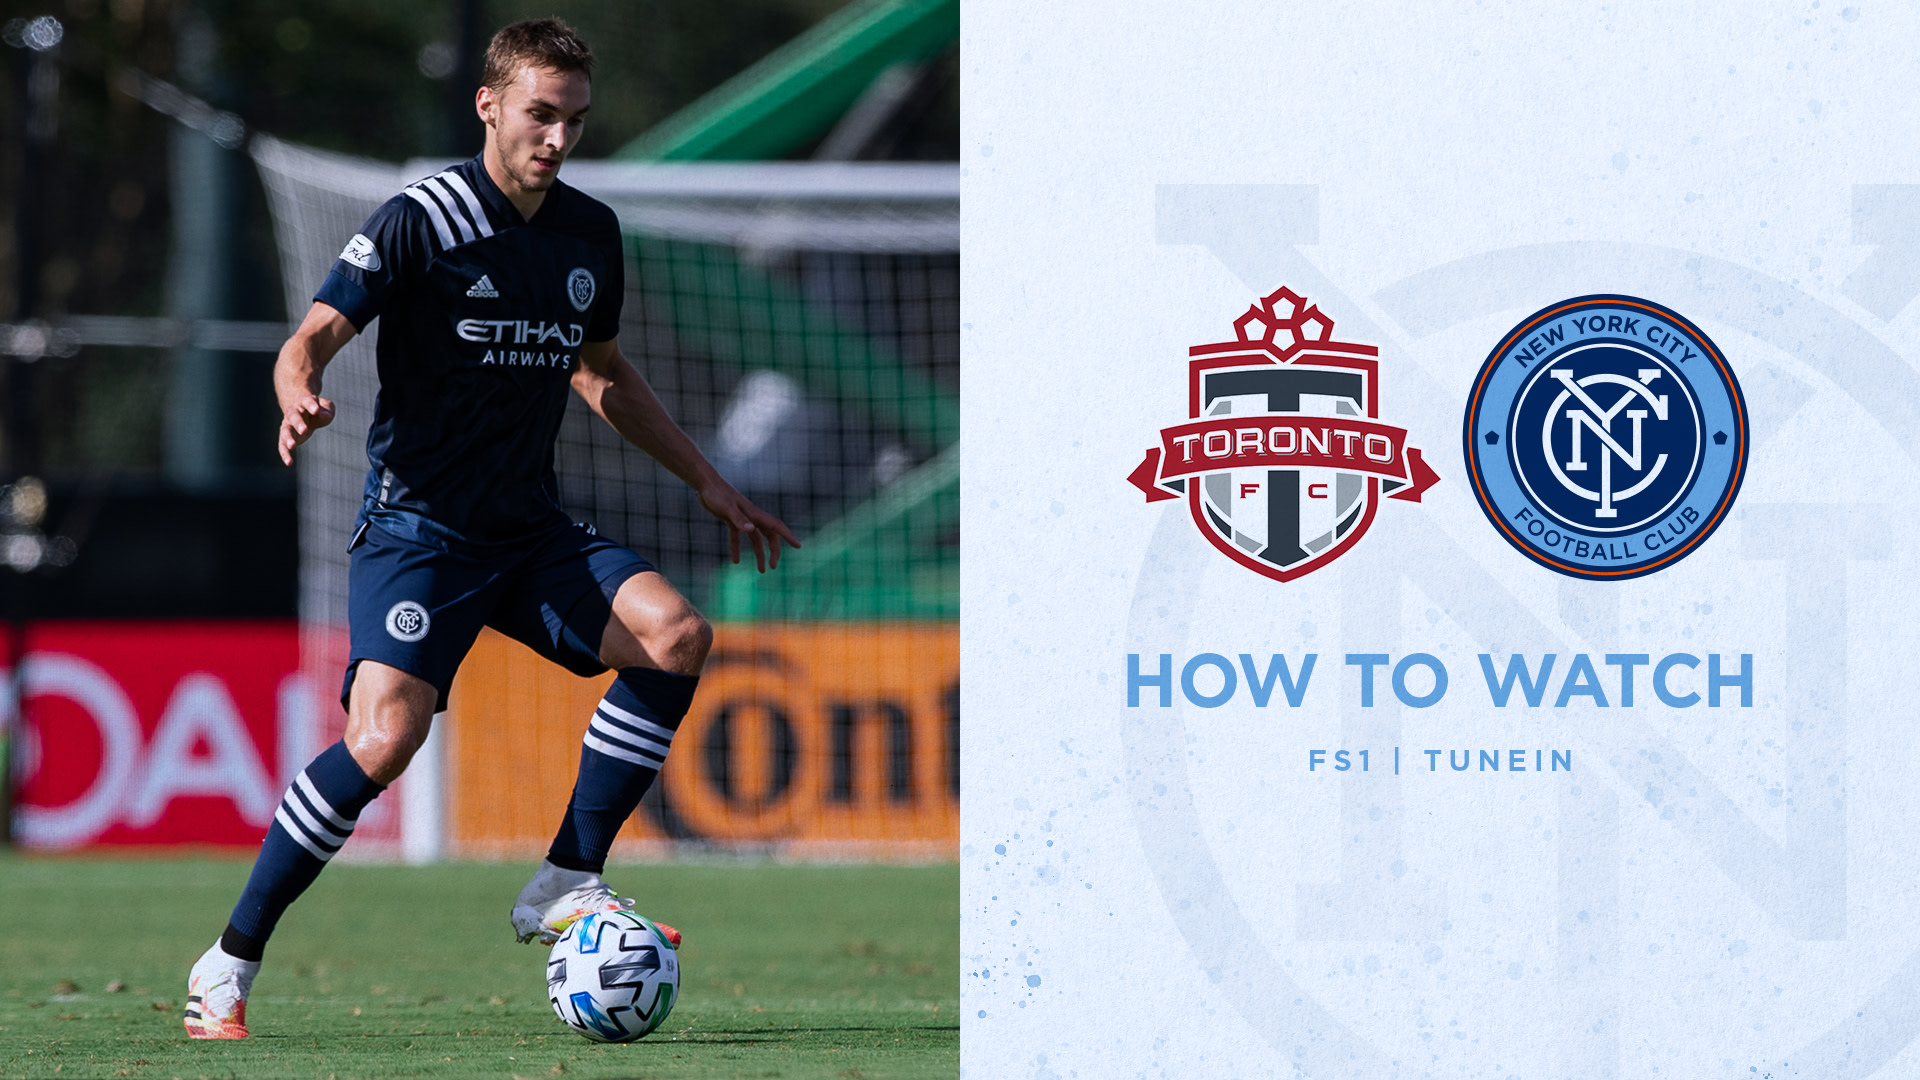 How to Watch and Listen to Toronto FC vs NYCFC   New York City FC